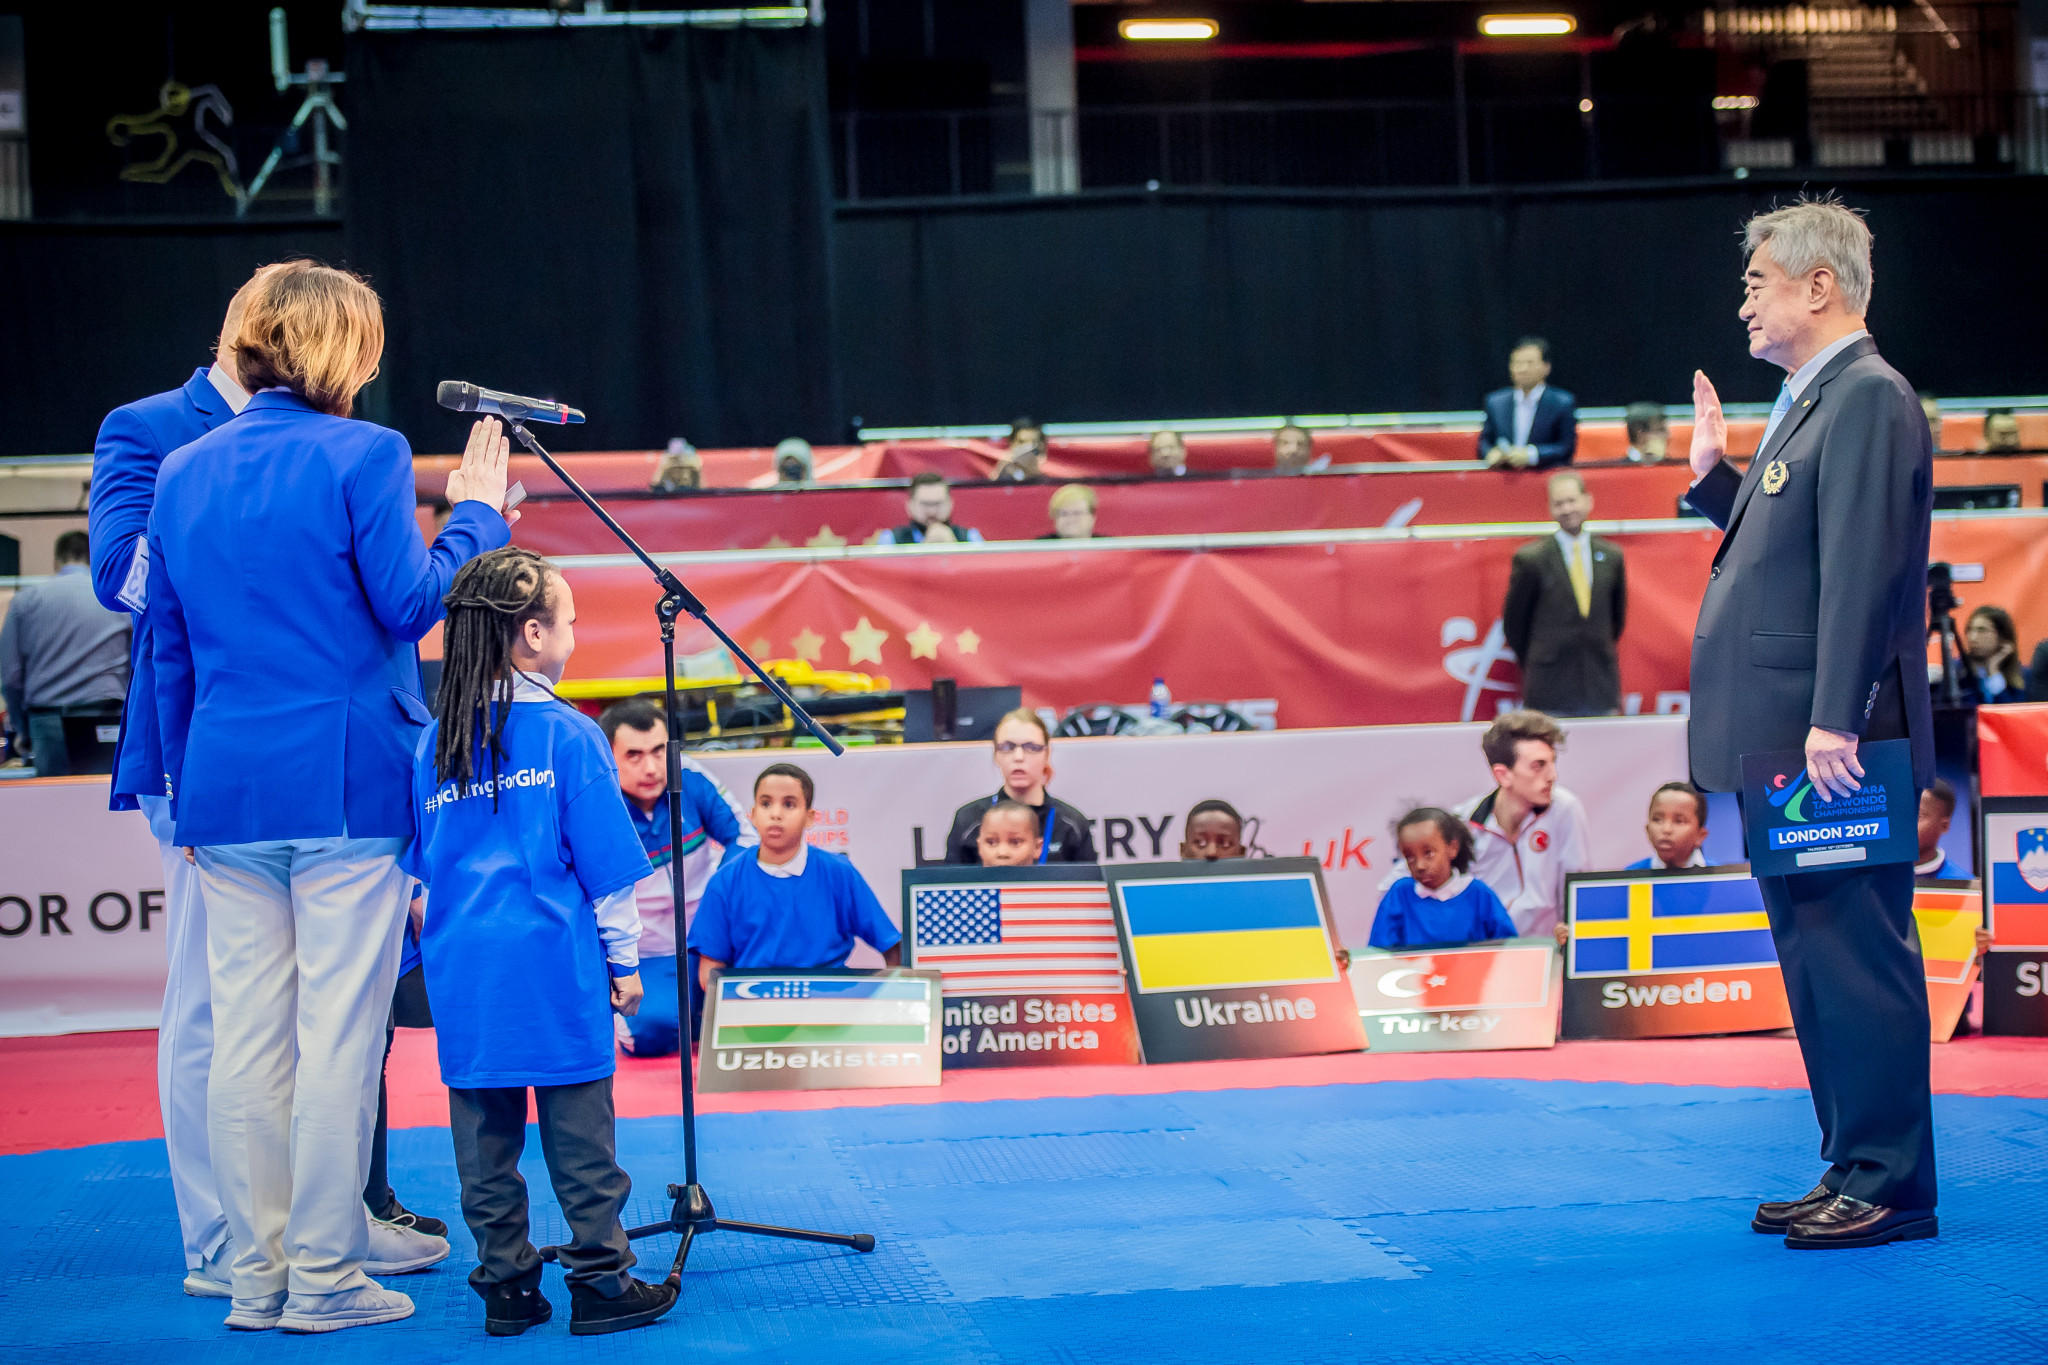 Great Britain's Christopher Codling and Croatia's Renata Crkvenac read the referees' oath ©World Taekwondo